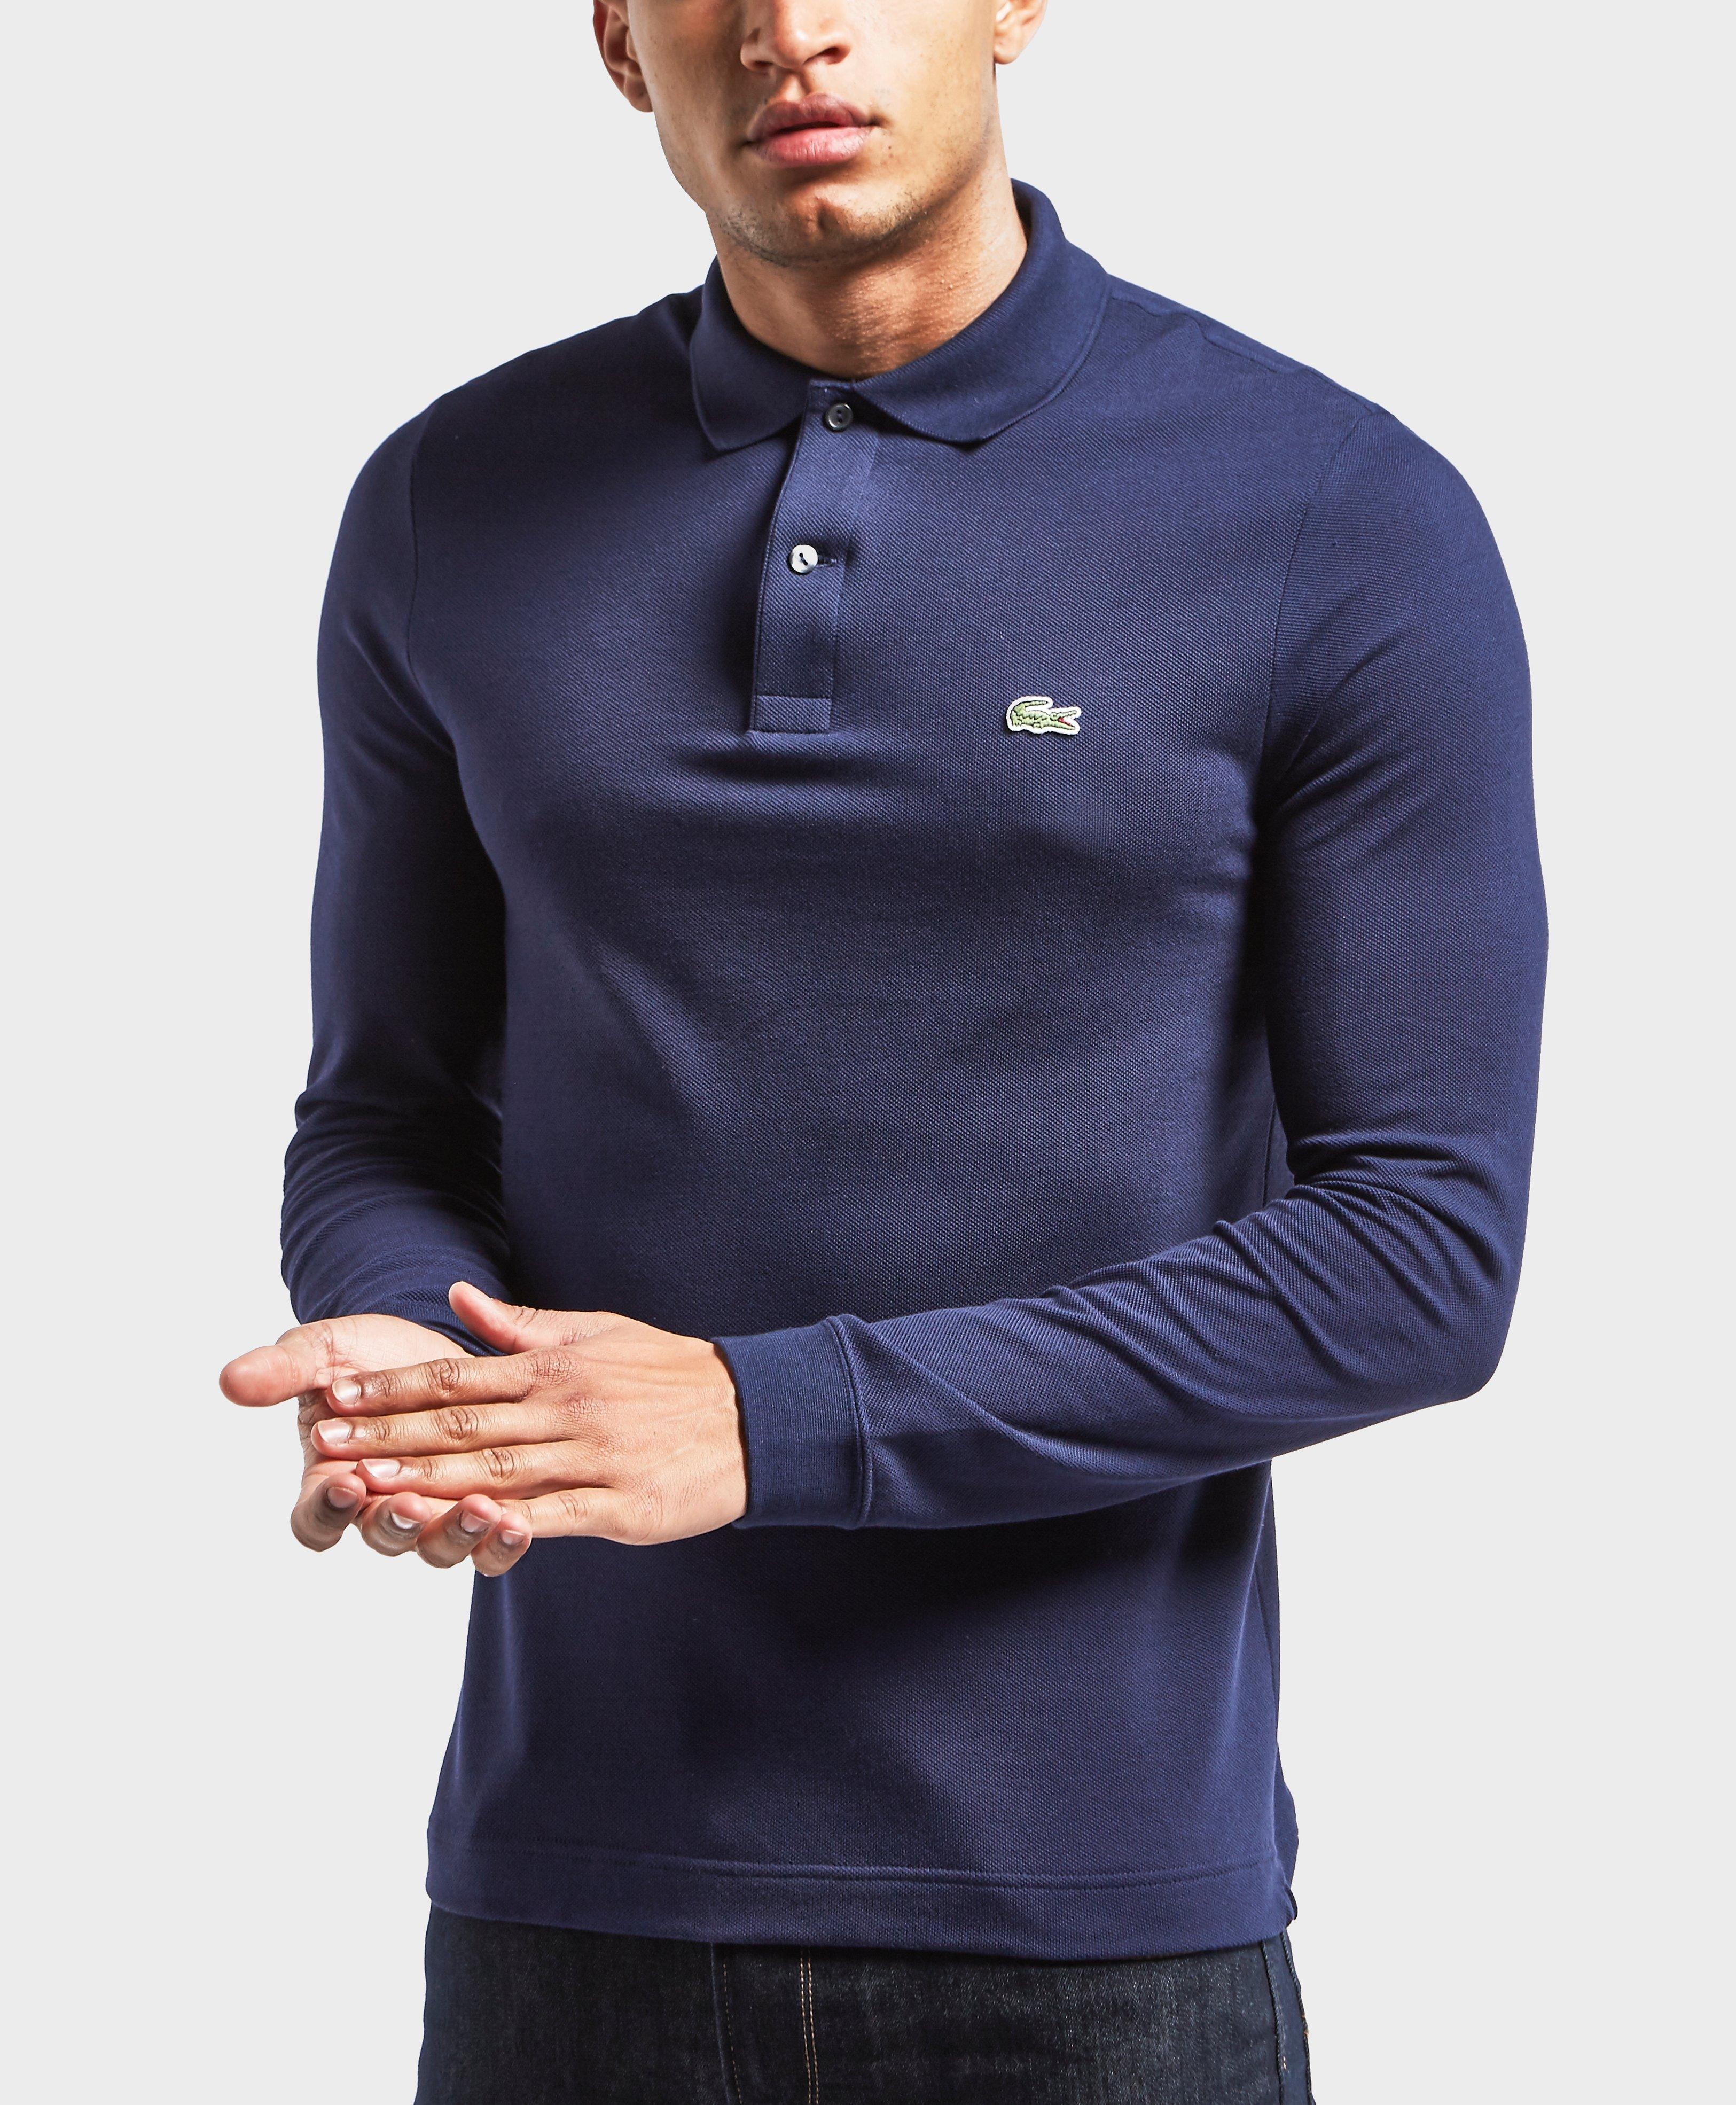 375a03d535c5 Lyst - Lacoste Slim Fit Long Sleeve Polo Shirt in Blue for Men